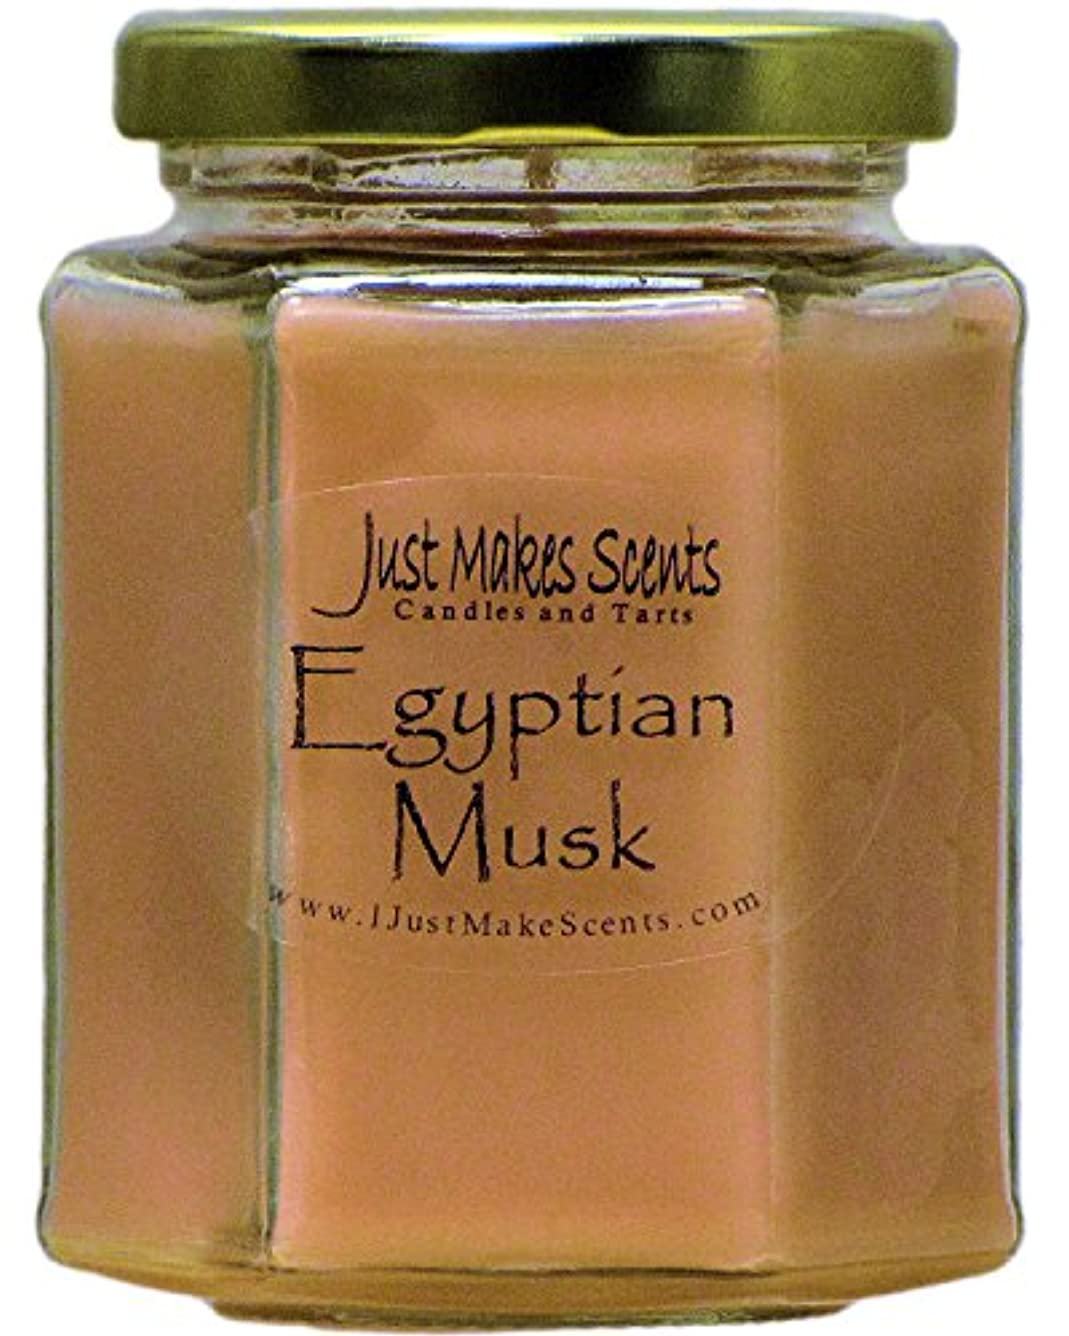 分類起きて礼儀Egyptian Musk Scented Blended大豆キャンドルby Just Makes Scents8オンス。。。 1 Candle C03809HCNL